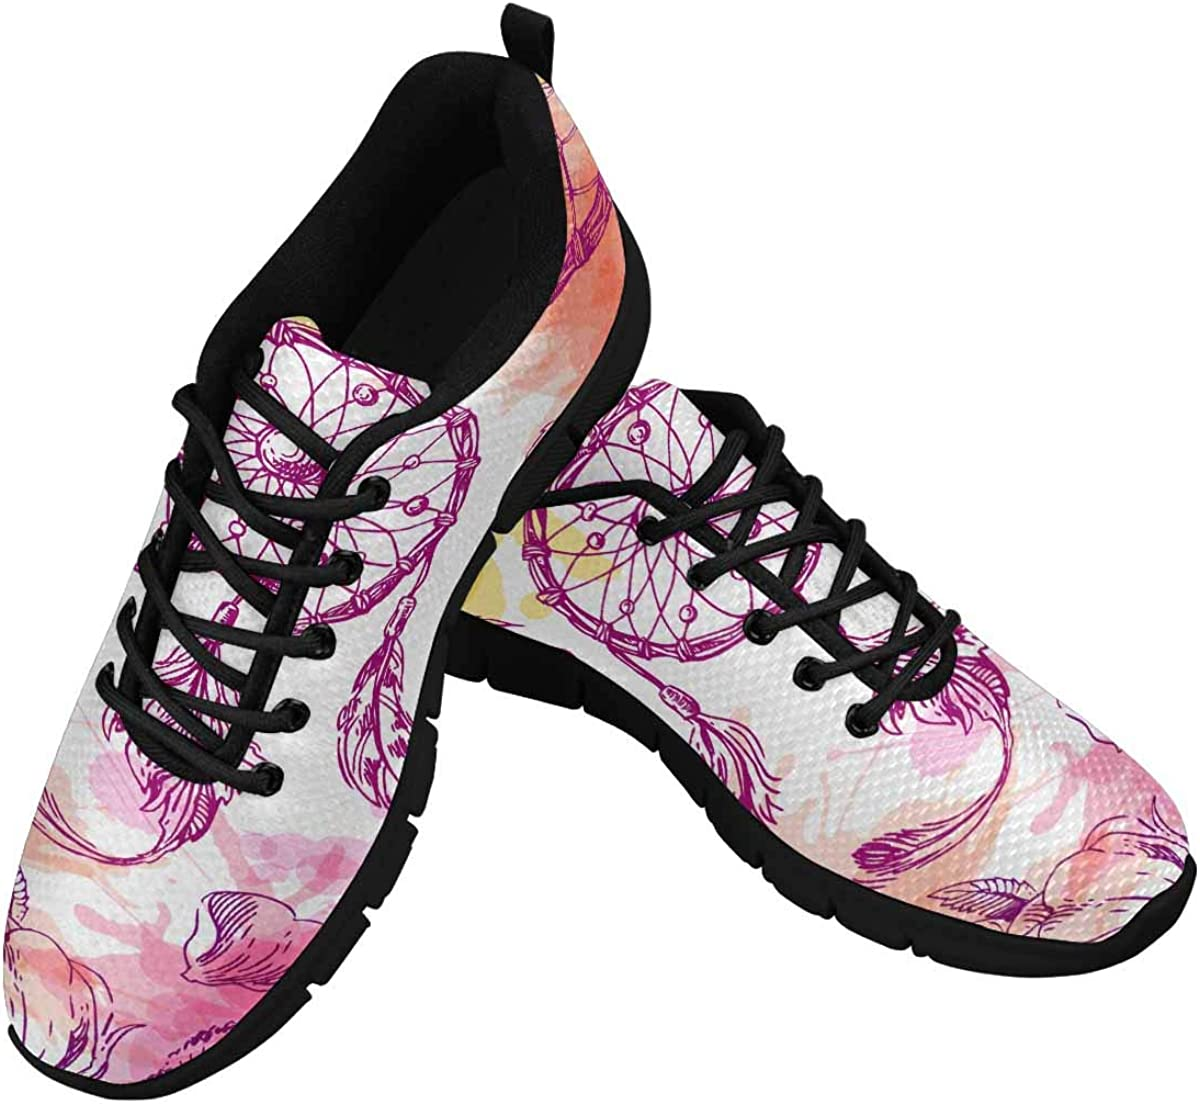 INTERESTPRINT Beautiful Boho Style of Dreamcatcher Women's Lightweight Sneakers Mesh Breathable Yoga Shoes